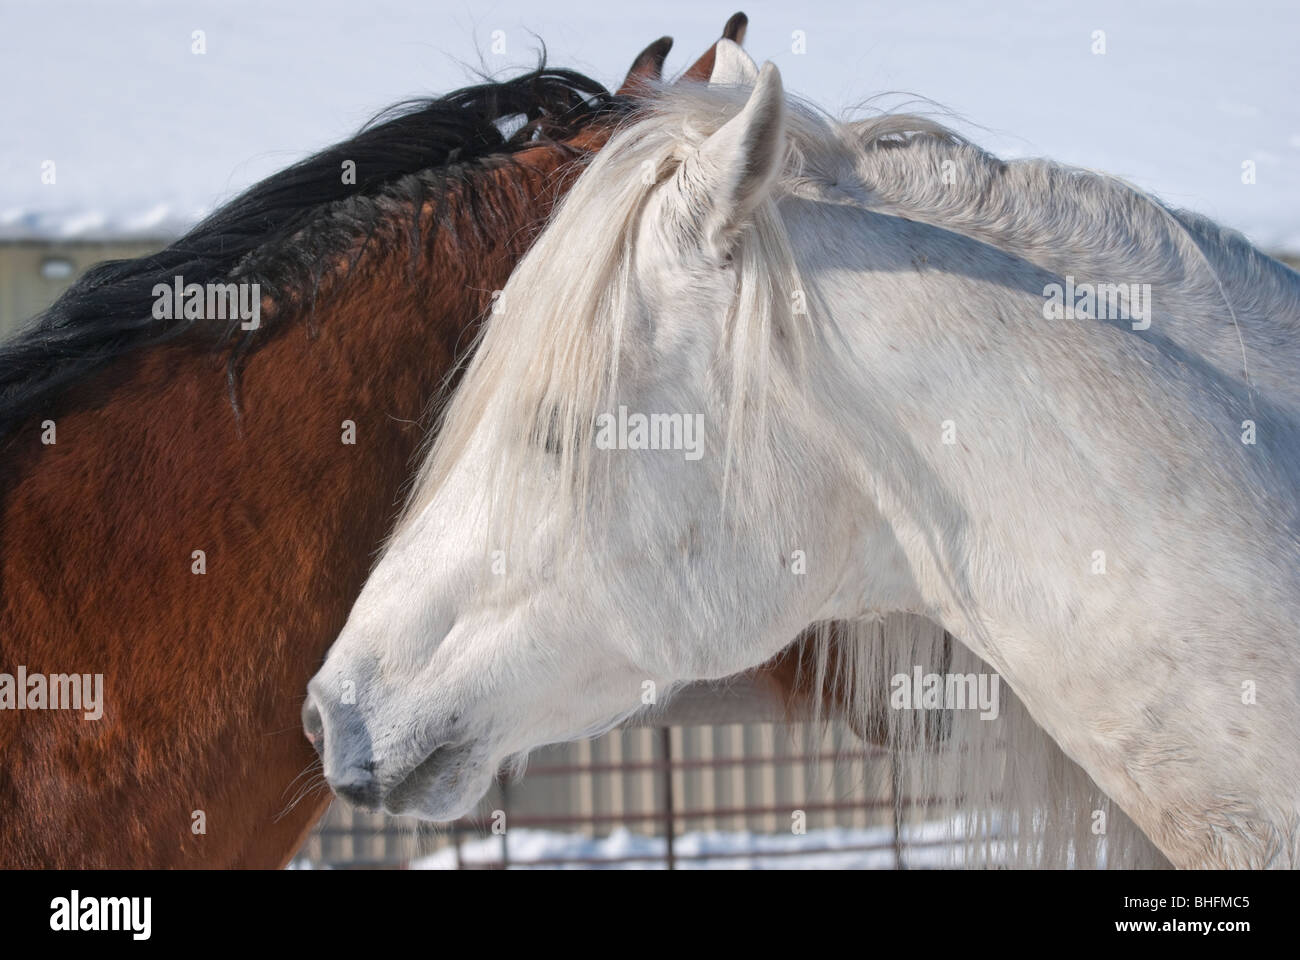 Picture of two horses nuzzling each other, whispering secrets to a friend. - Stock Image